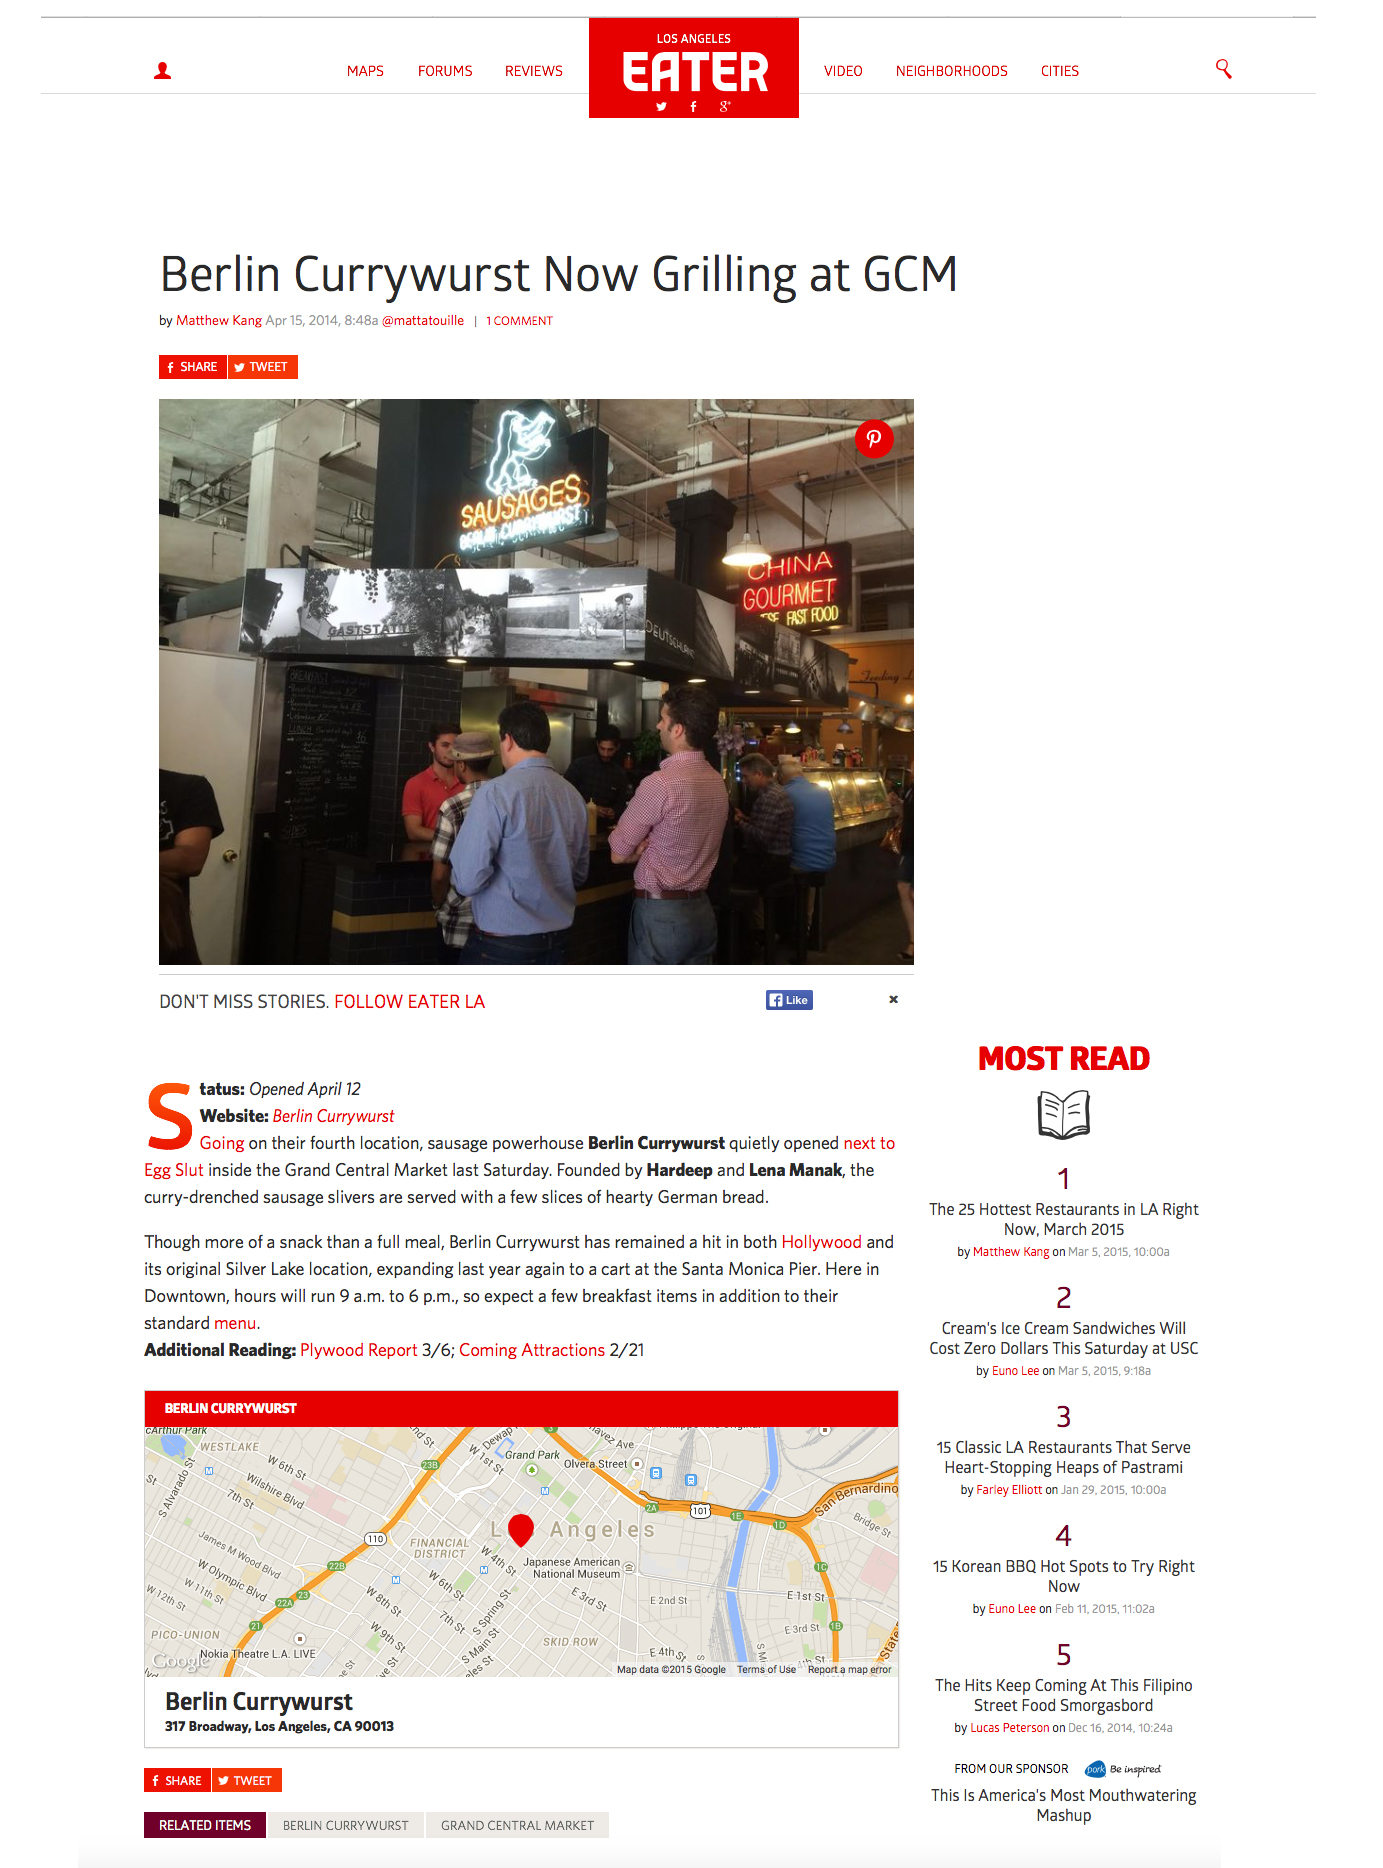 Berlin Currywurst Press